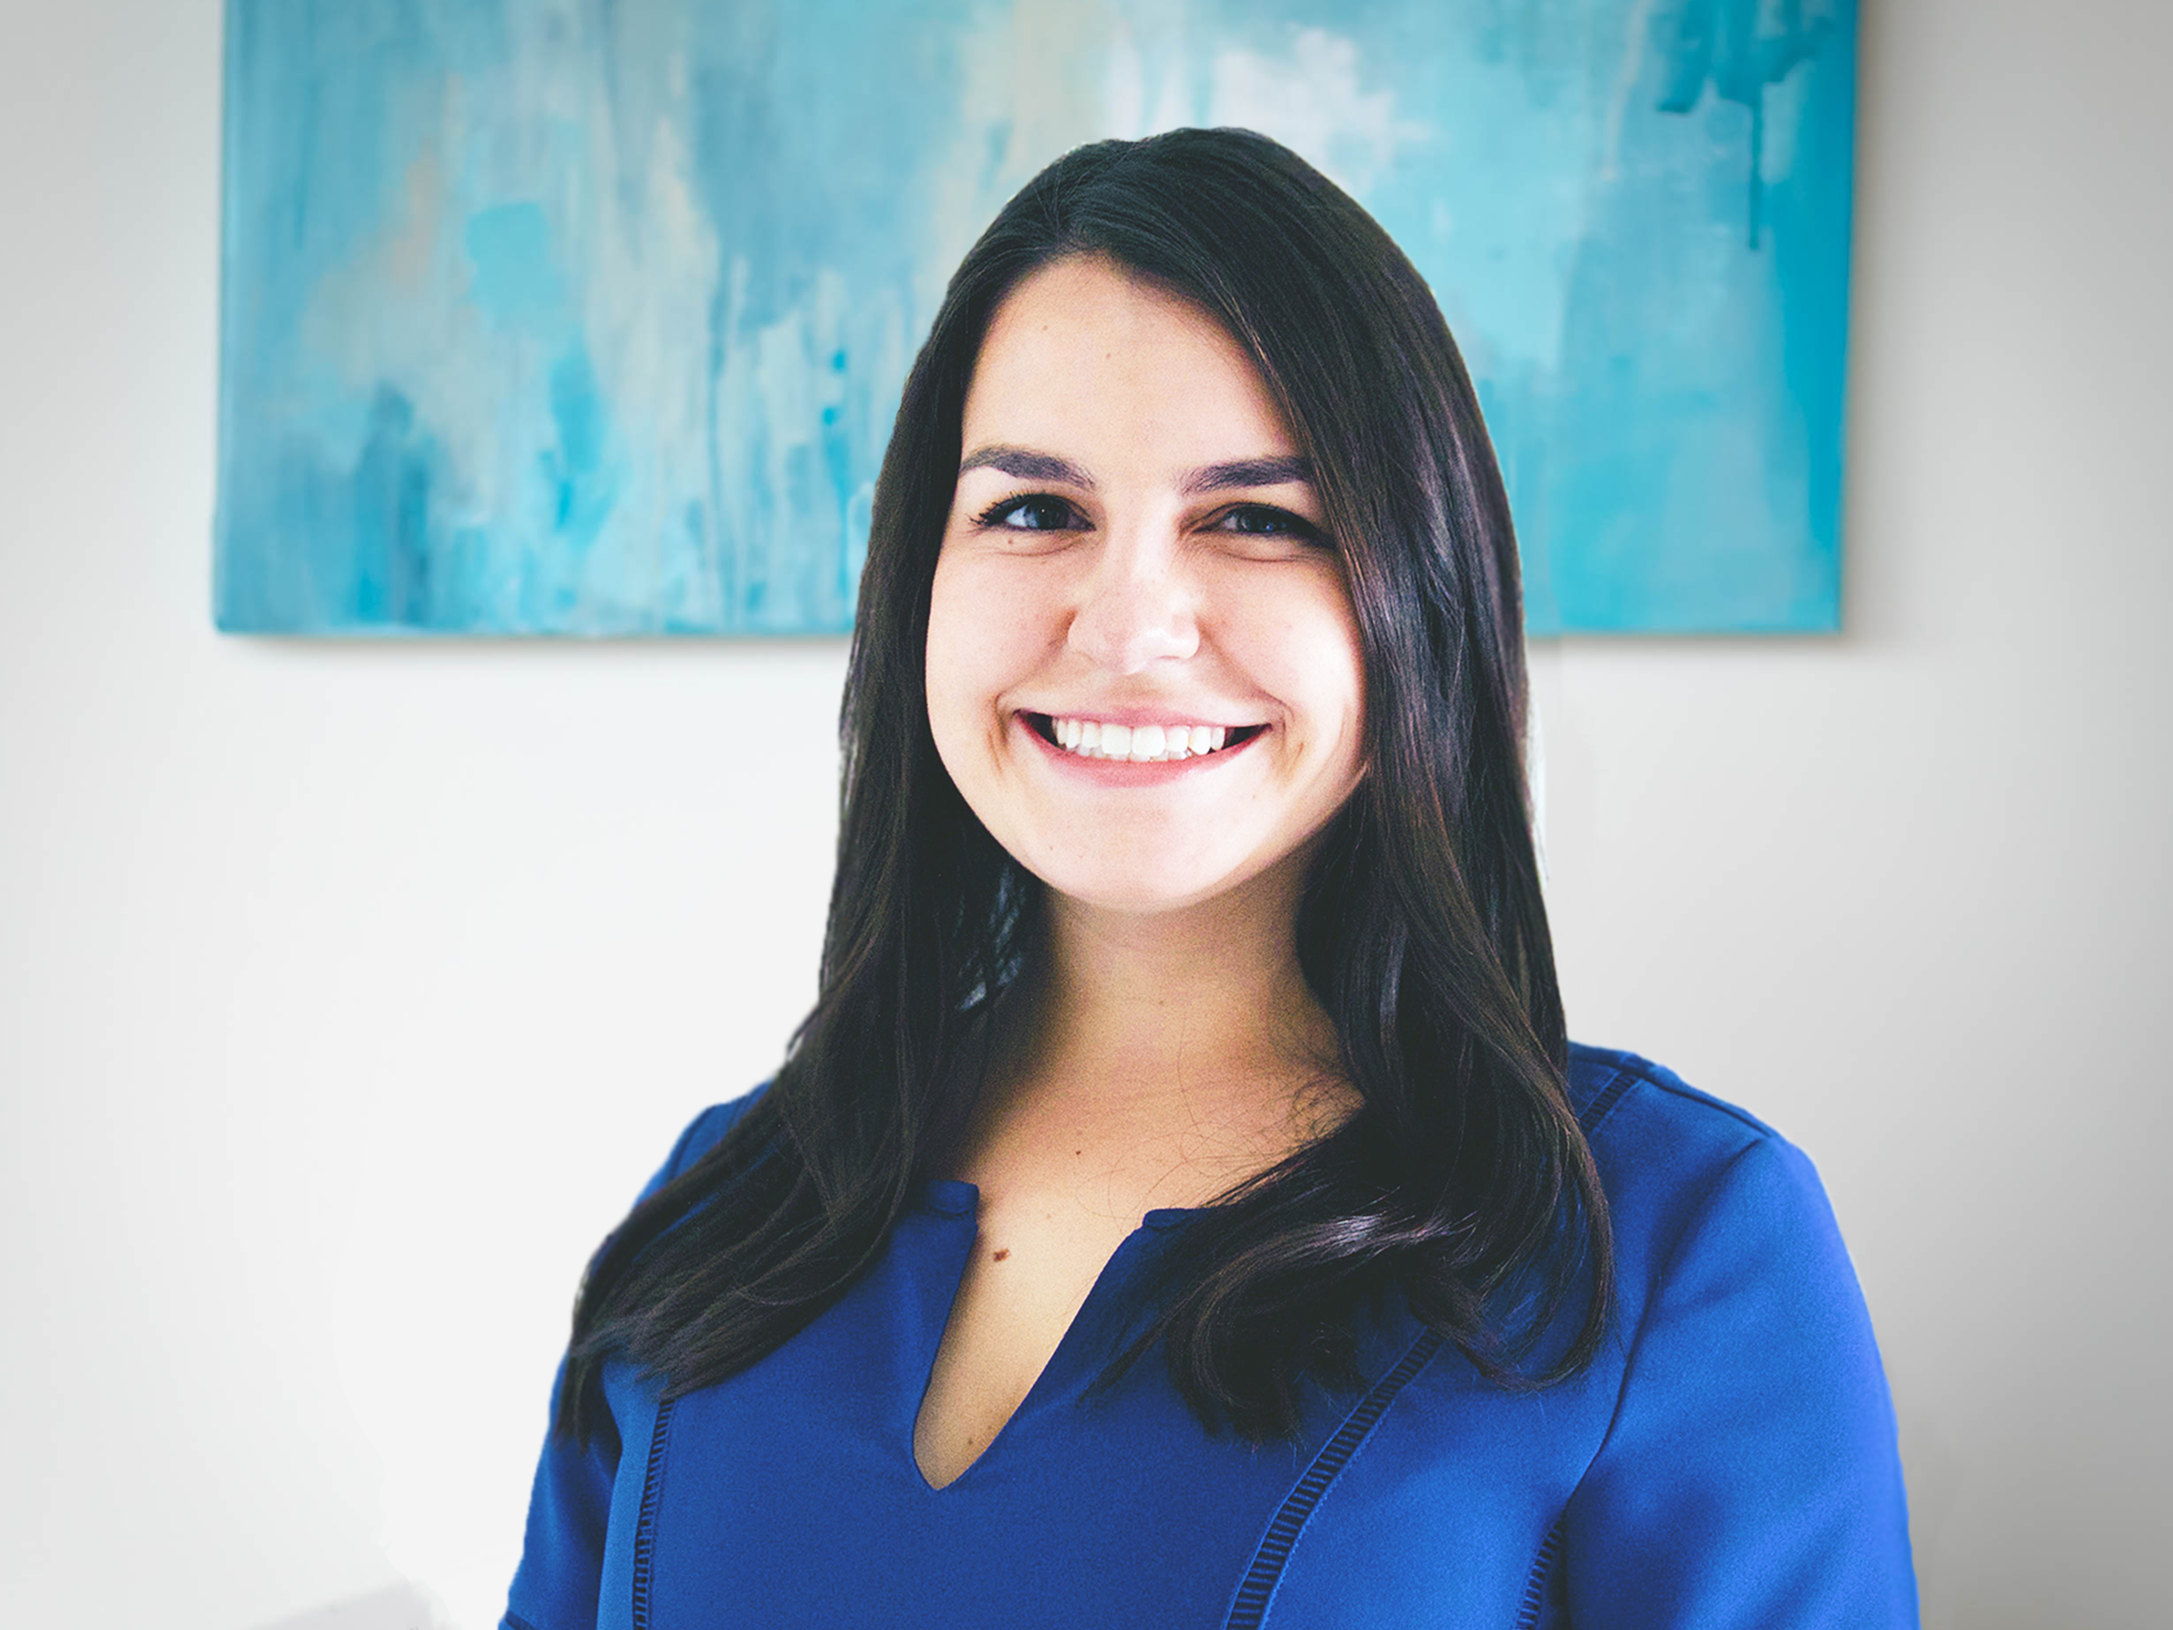 Samantha Moore - public affairs specialistSamantha's public affairs role combines her love of writing, pulse on current events and passion for connection. Her ideal day would be enjoying a good brunch and exploring a new city with friends.Learn more about Samantha